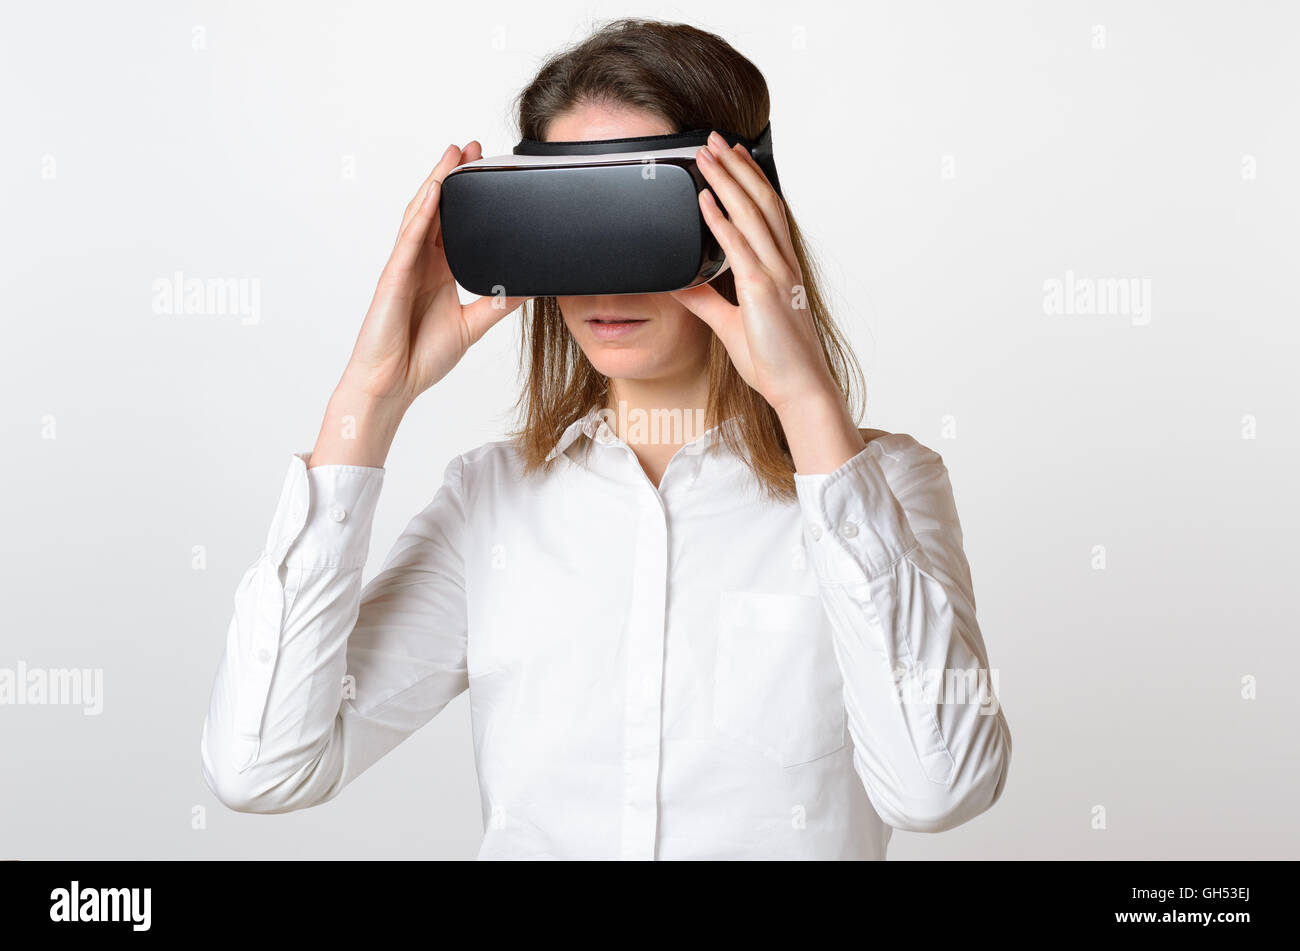 Single serious young woman in dark hair holding large 3D virtual reality viewing device over face on gray background - Stock Image